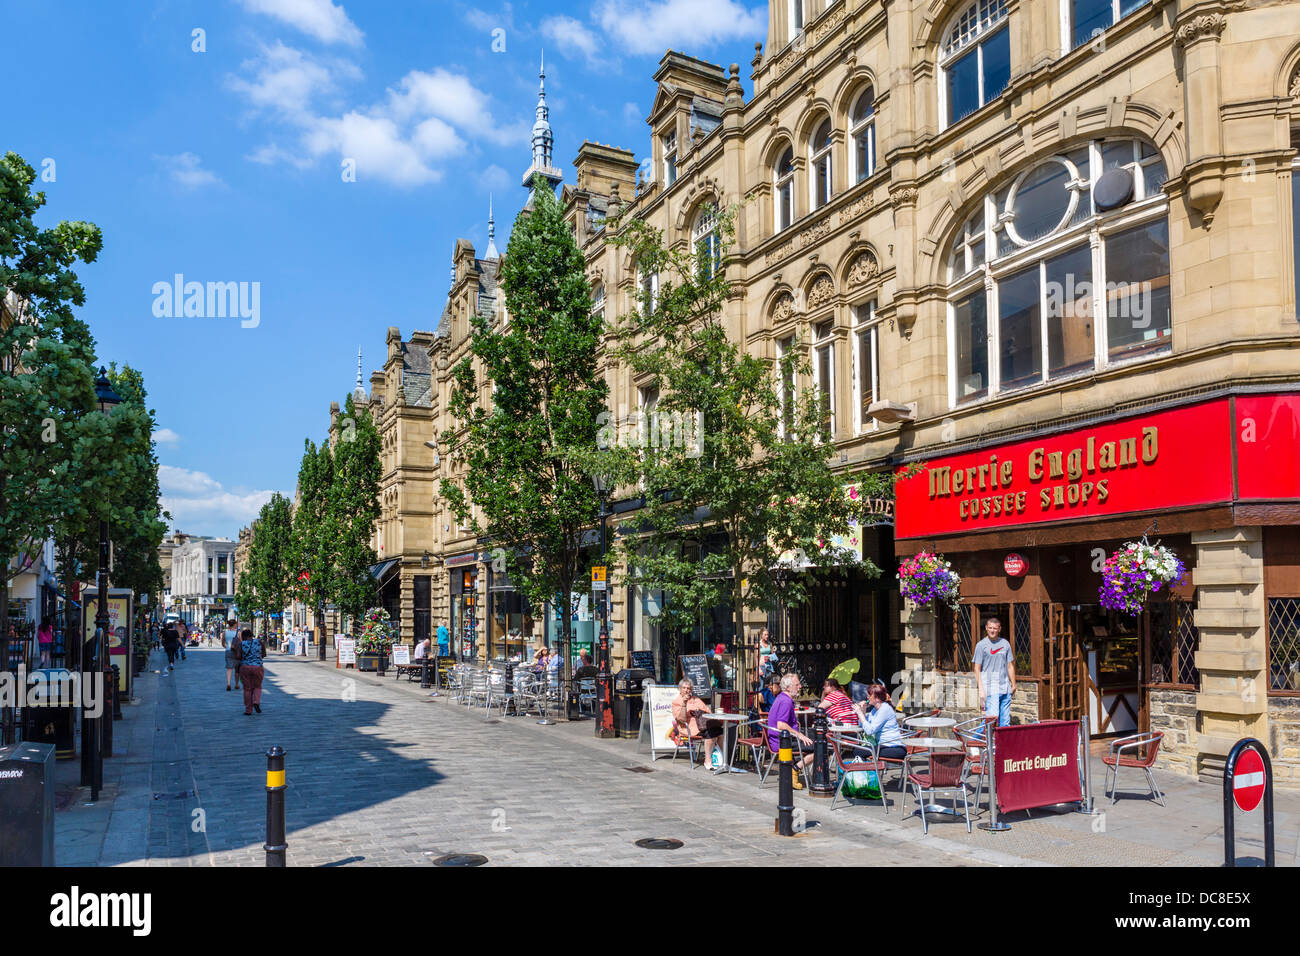 Halifax west yorkshire united kingdom